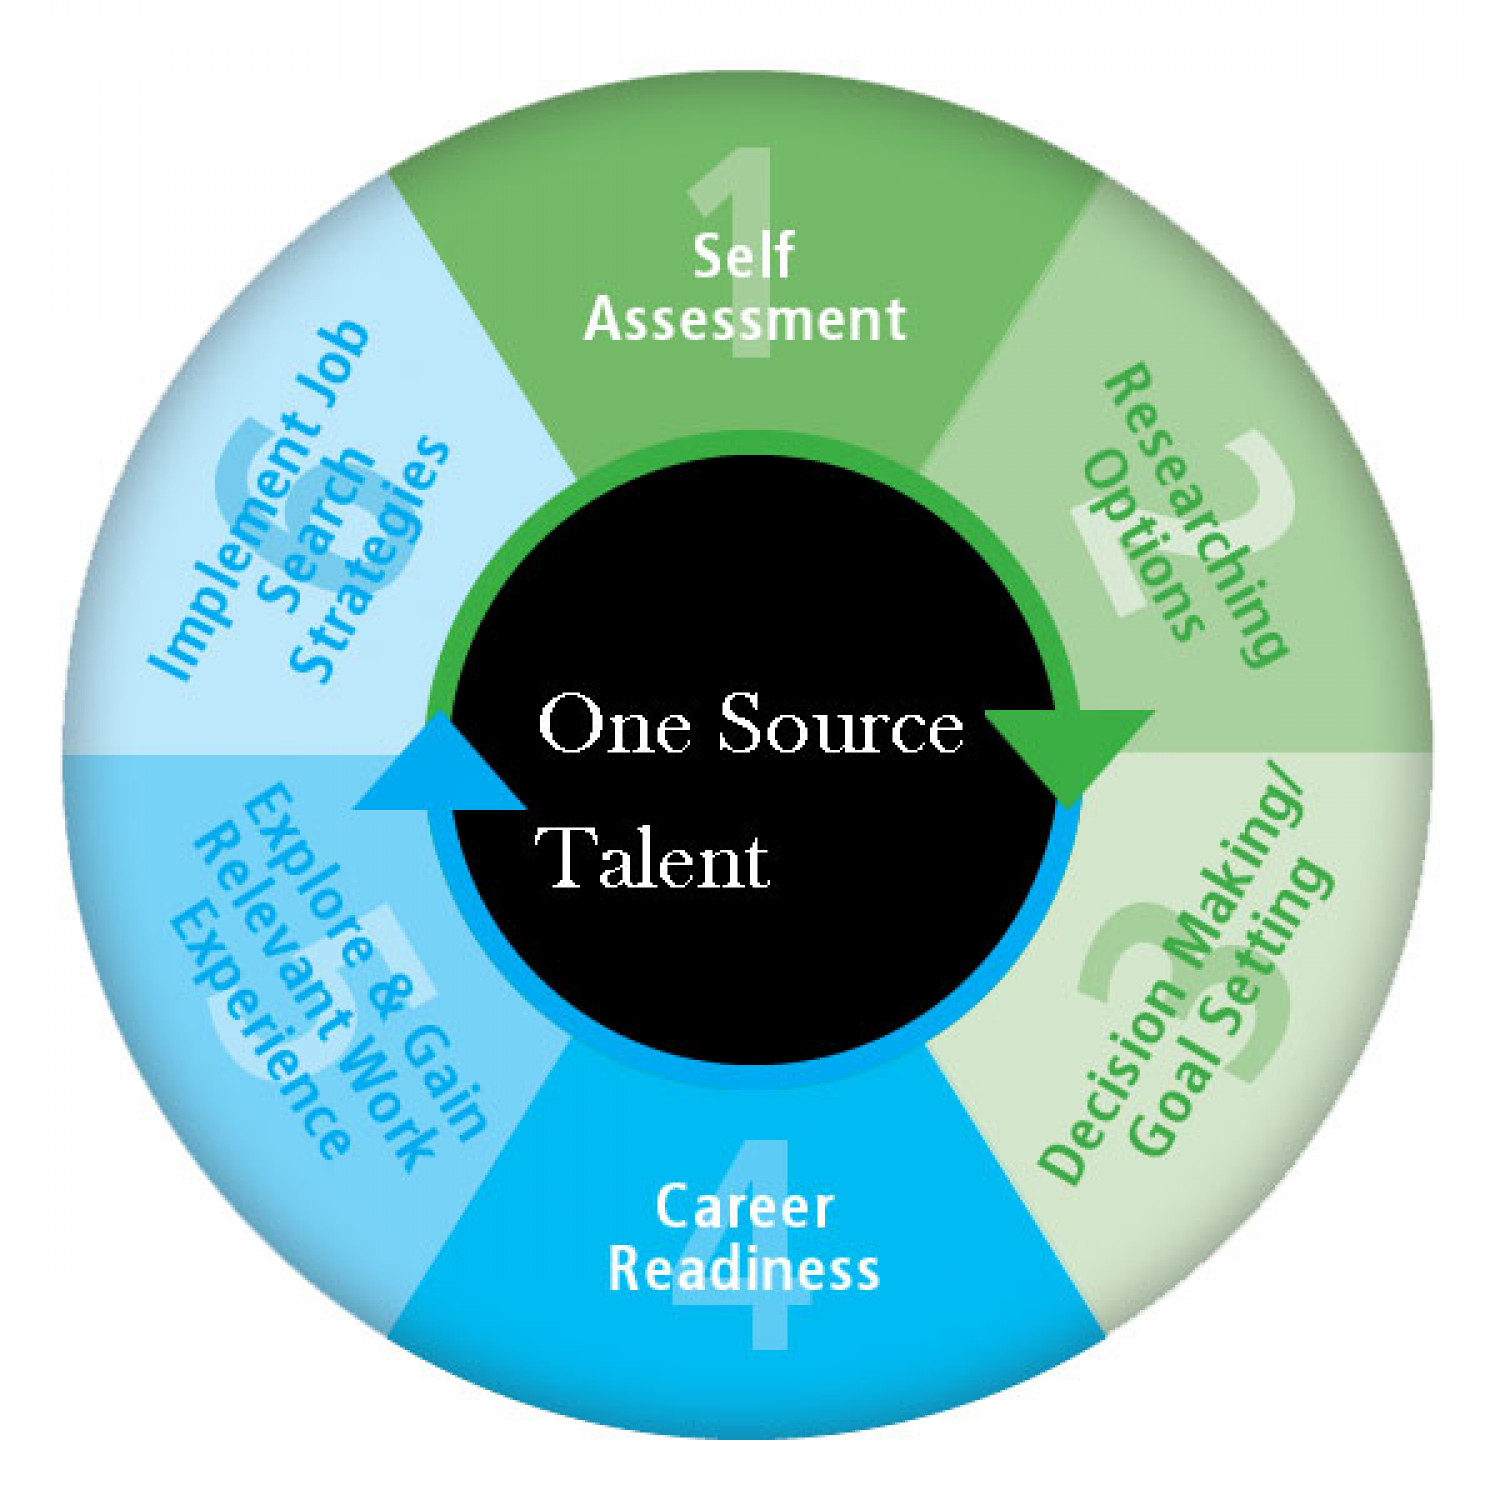 One Source Talent Life Cycle Infographic